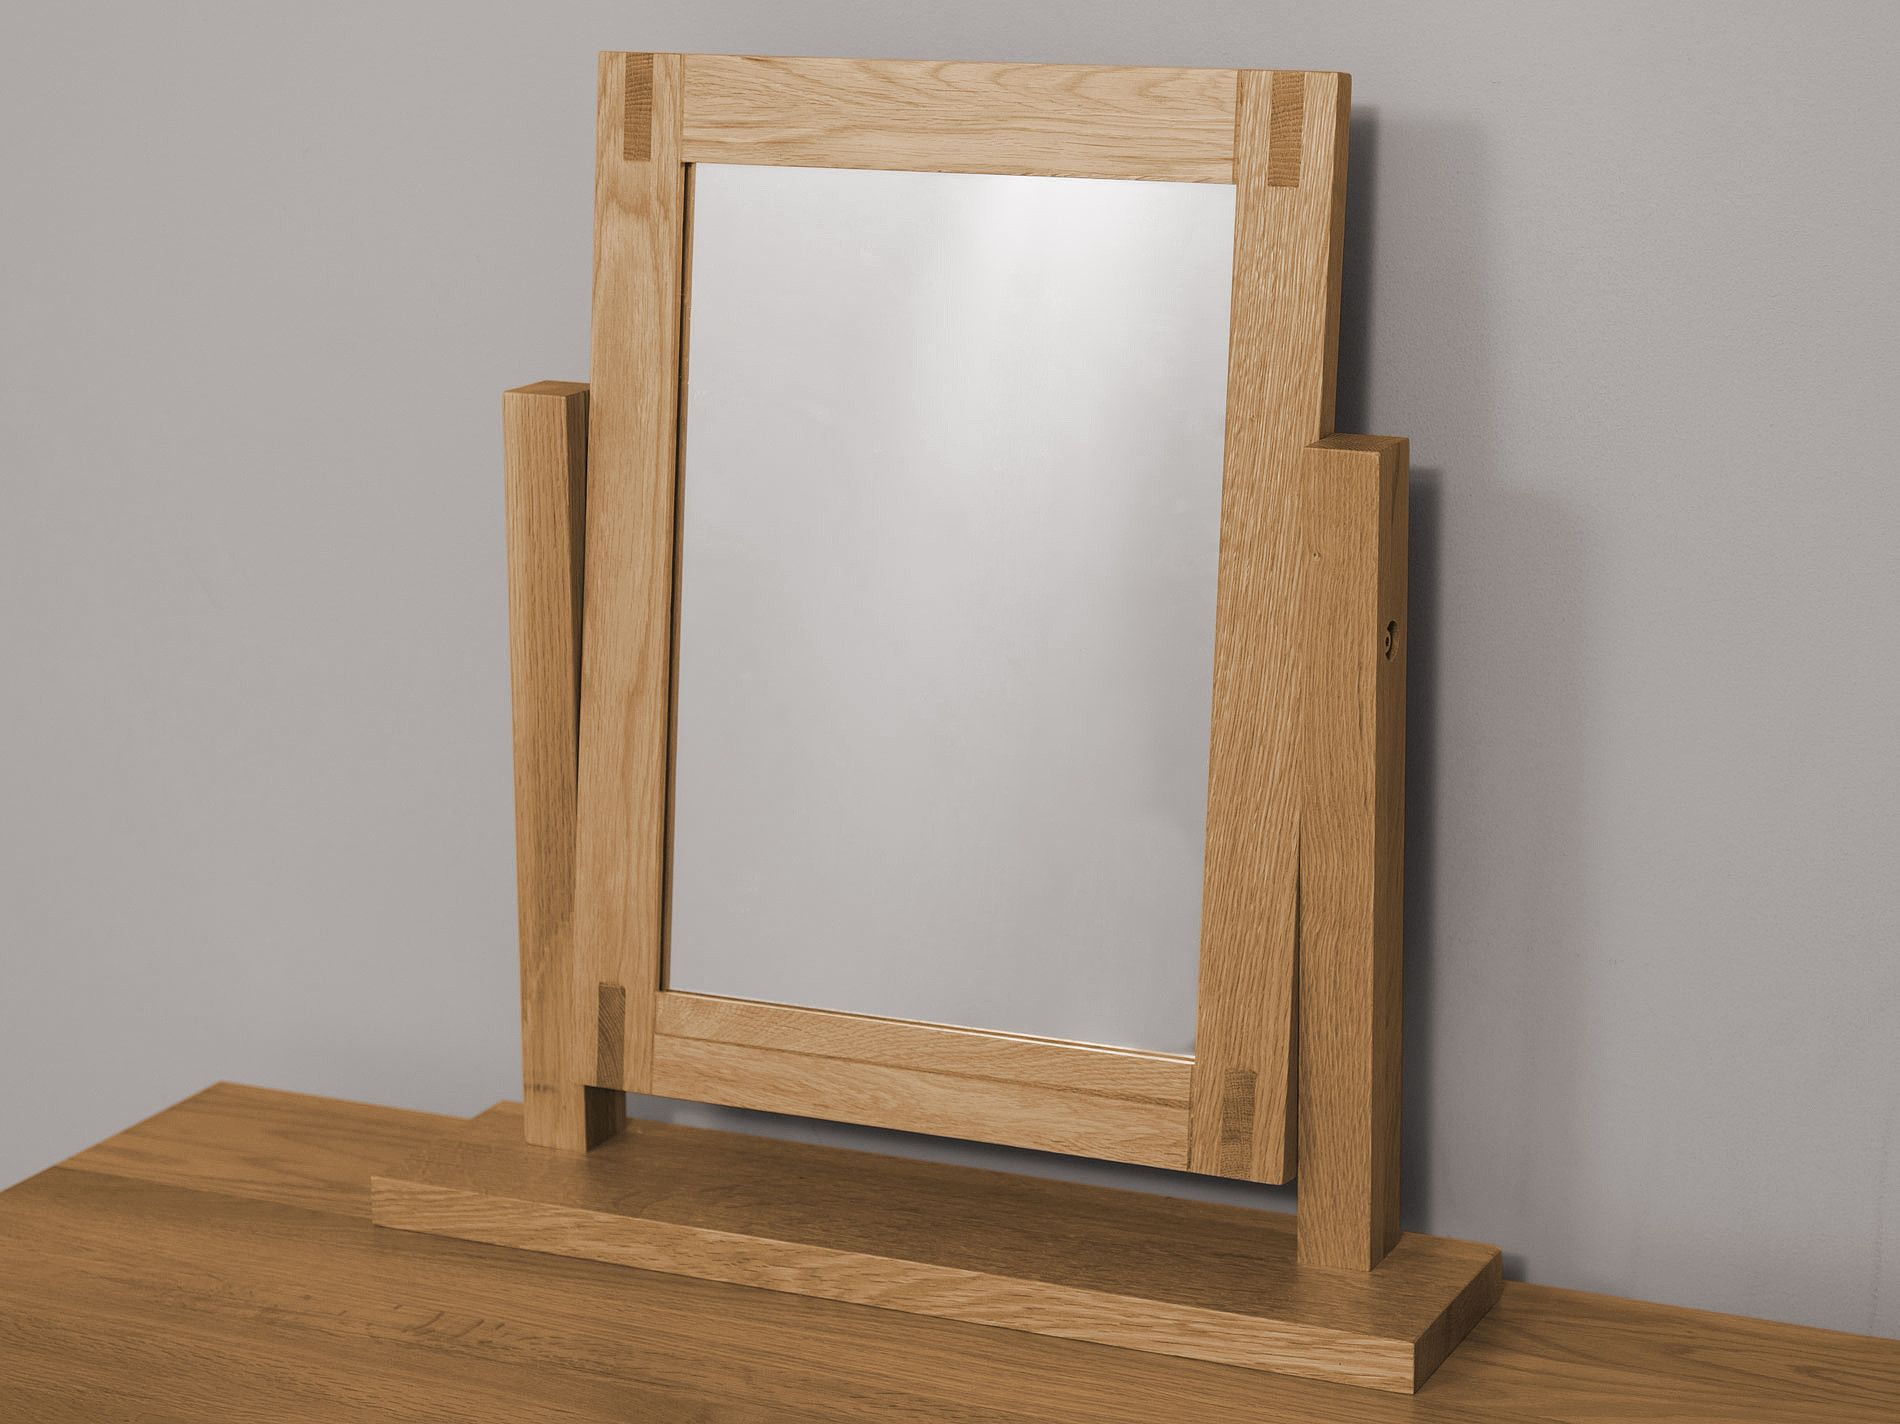 Alto Natural Solid Oak Dressing Table Mirror Mirrored